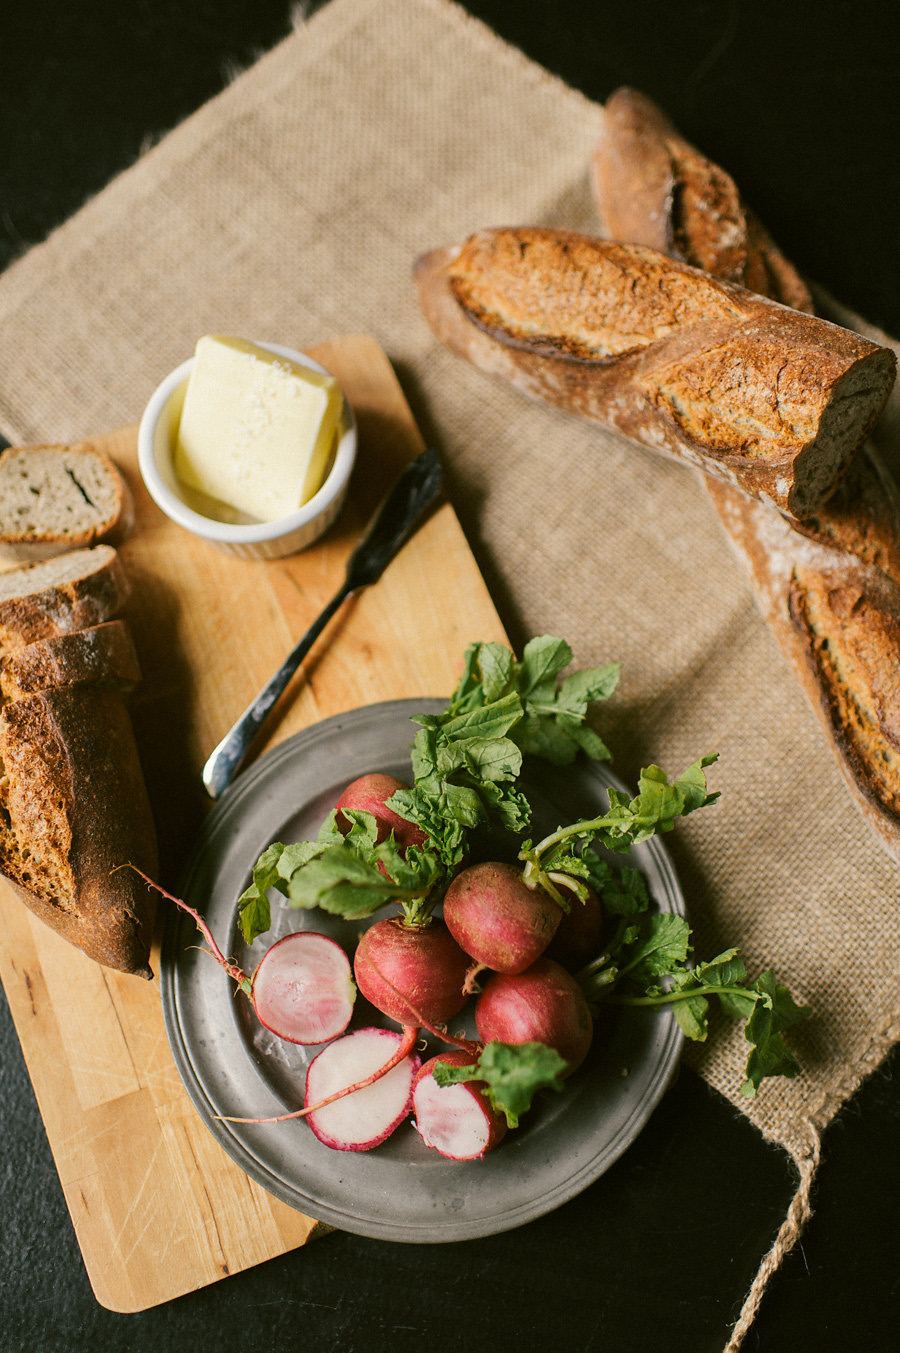 radish-rustic-baguette-cutting-board-burlap-food-styling